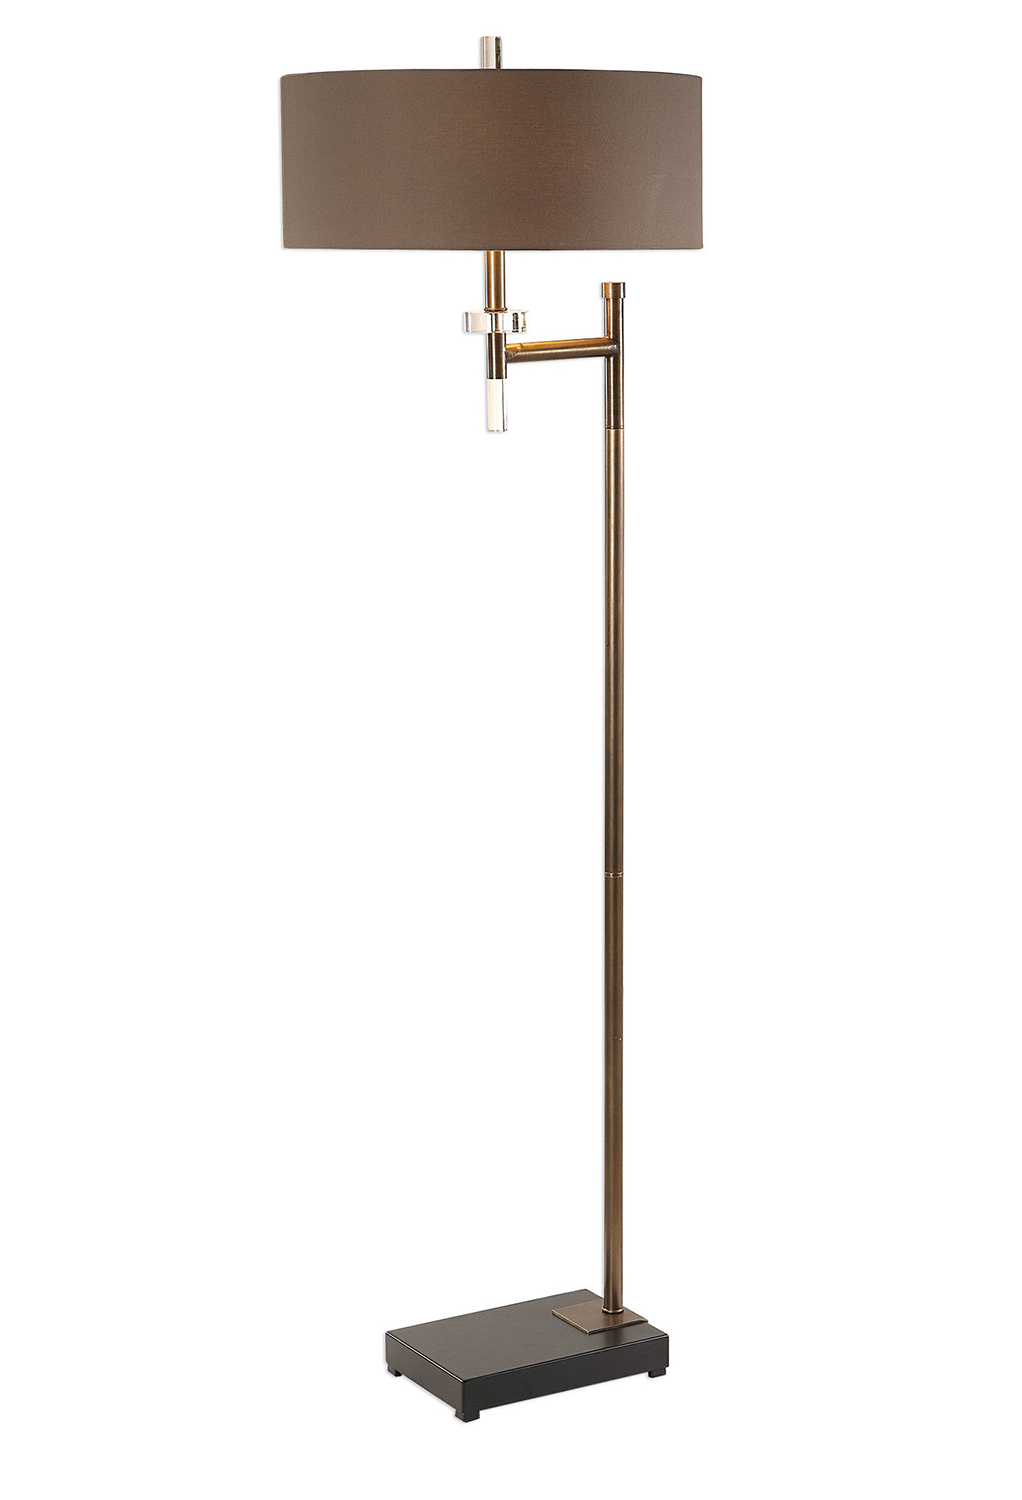 Uttermost Oletha Floor Lamp - Dark Bronze